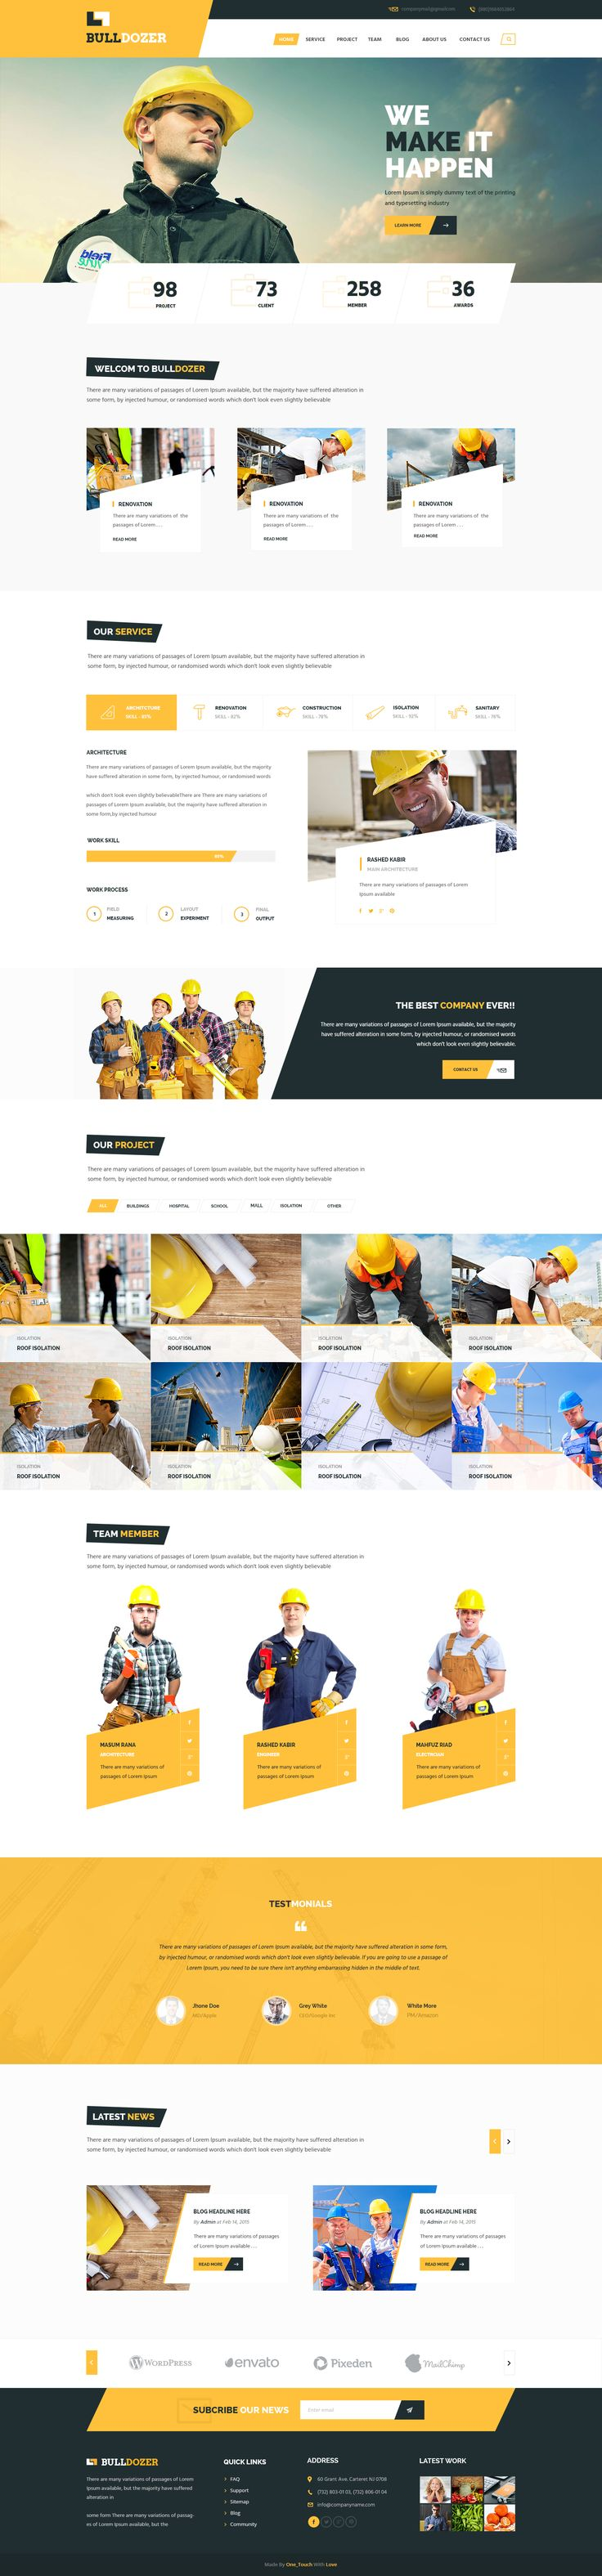 Clean and simple web design for a construction website designed by Masum Rana, via Dribble.                                                                                                                                                      More